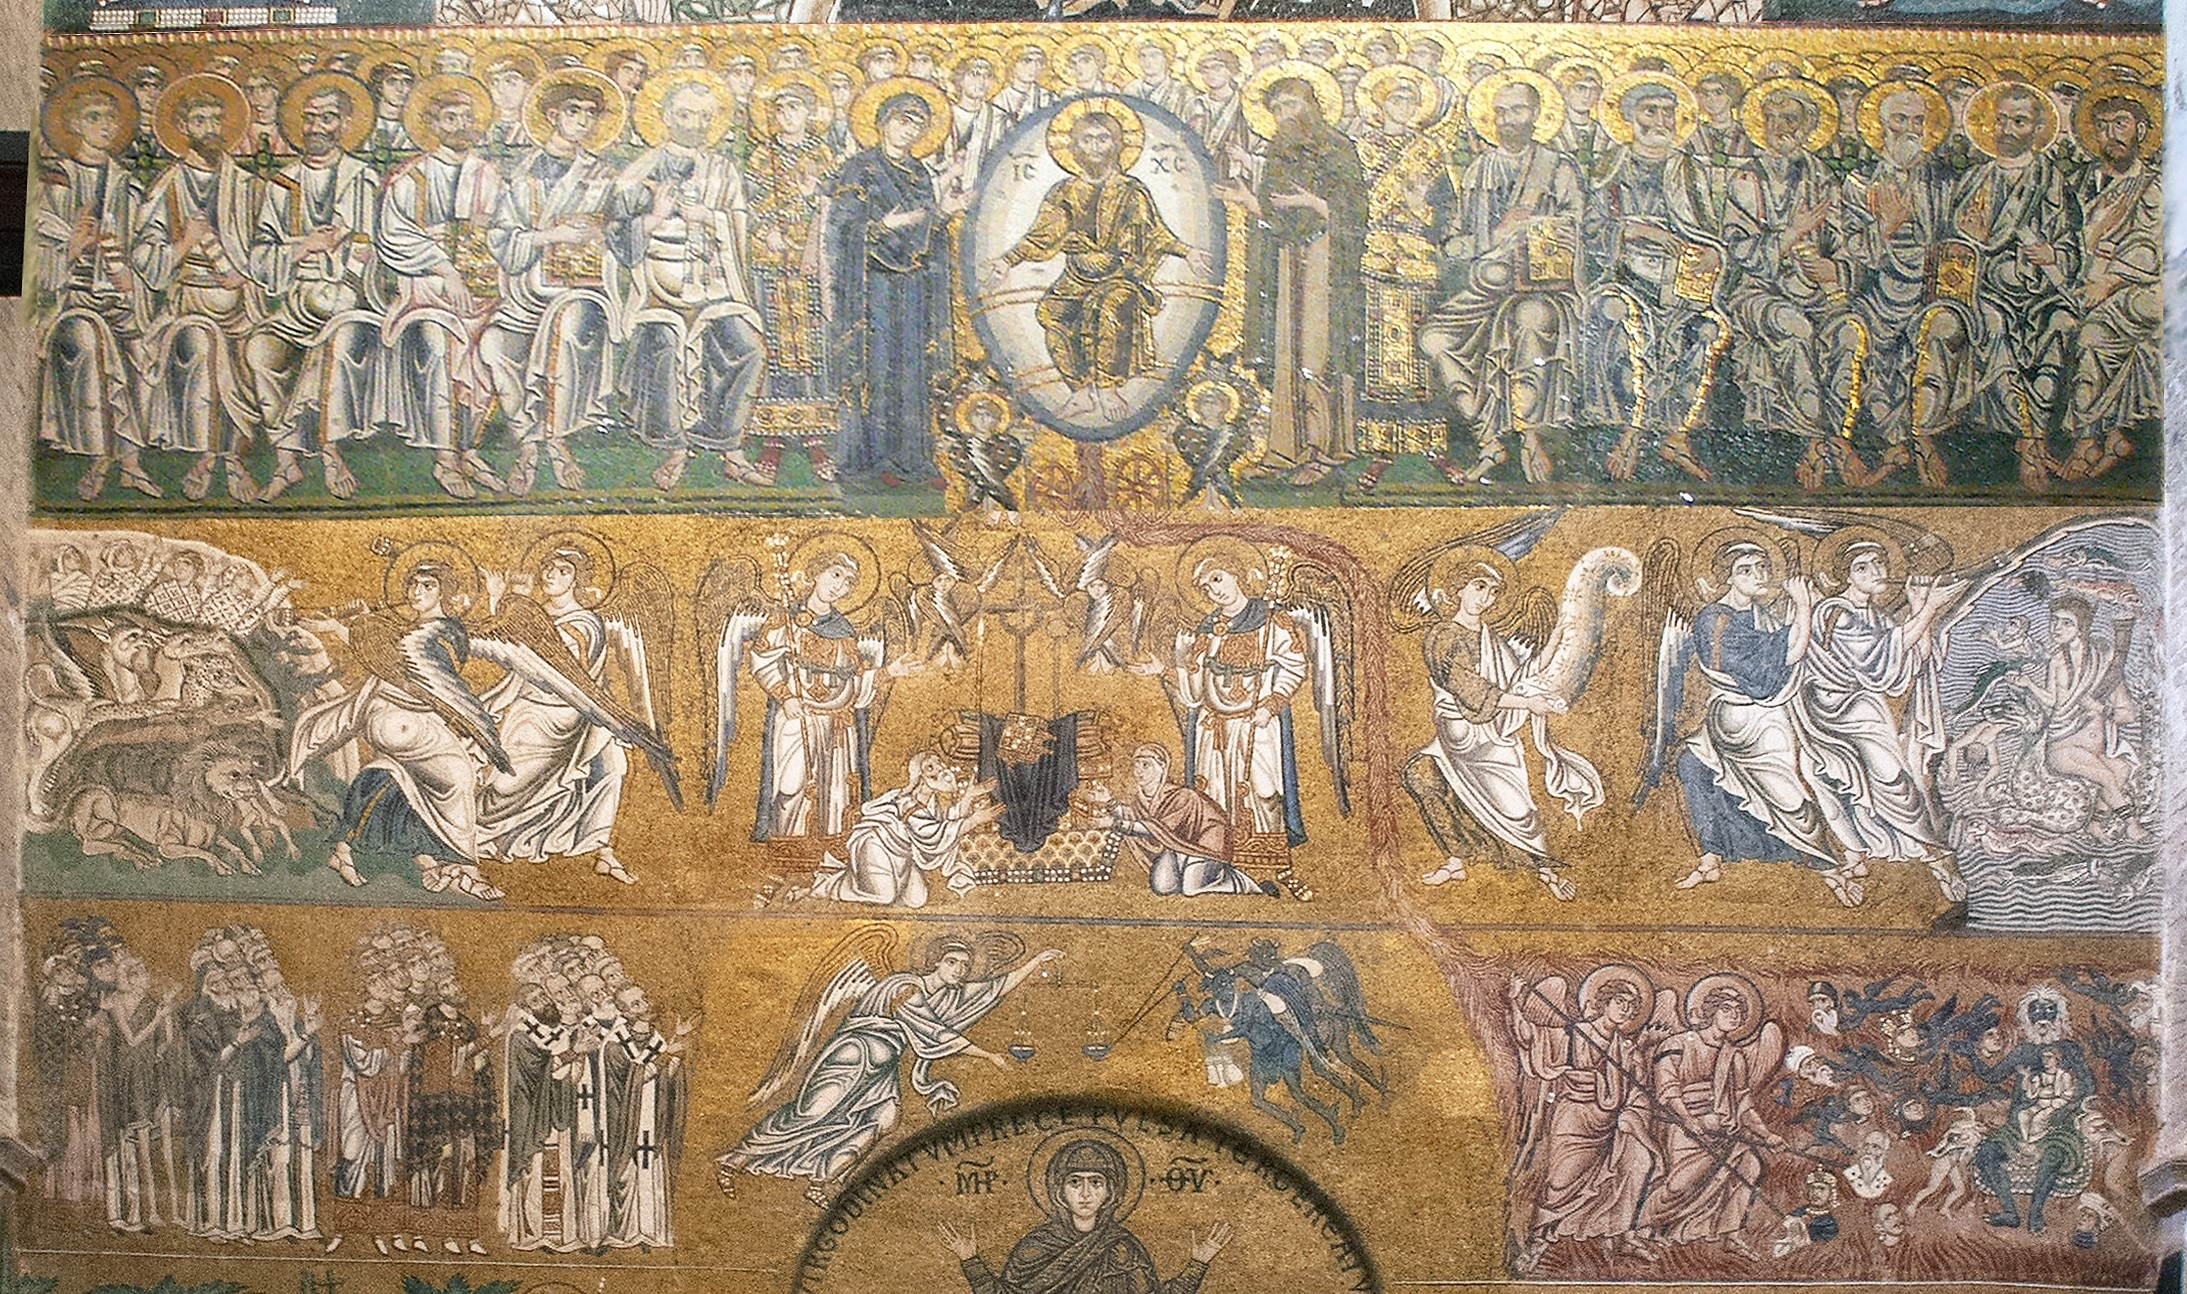 Mosaic_of_the_Last_Judgment_of_Santa_Maria_Assunta_(Torcello) XIIeme